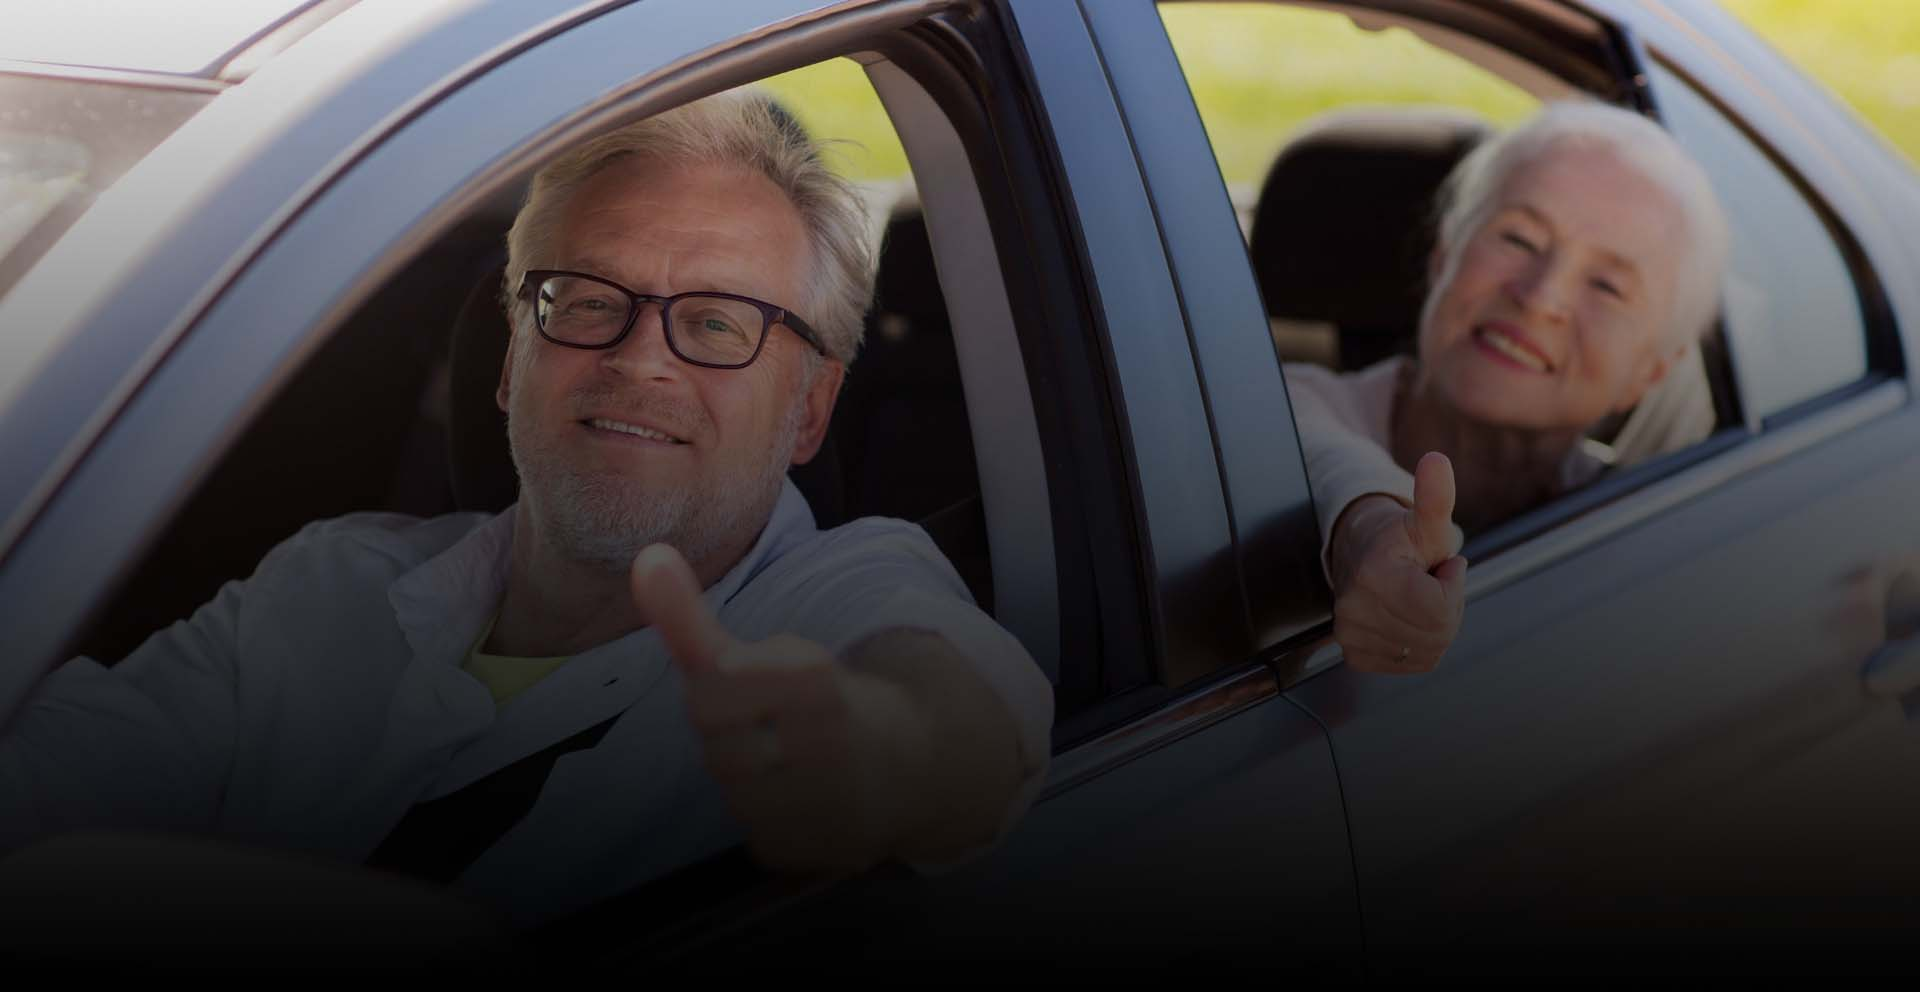 How to Choose The Right Car For Your Retirement